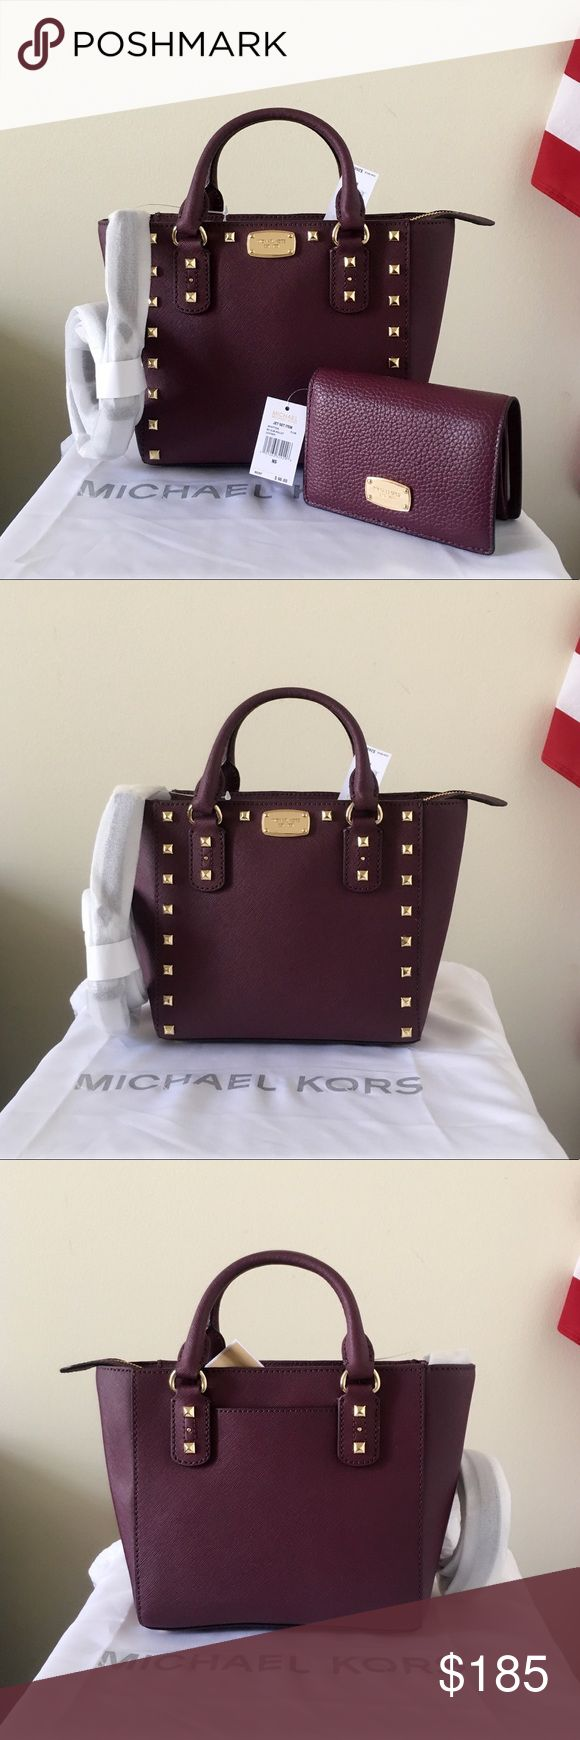 NWT Michael Kors Sandrine Stud Small Satchel Set Super cute set! Plum color with gold detailing! New with tags. Authentic!  Both purse and wallet are new with tags, the Sandrine Stud Satchel is in small size, has a long strap.  Measurement: 10*7.5*4 inch  Dust bag and paper shopping bag are included Michael Kors Bags Satchels